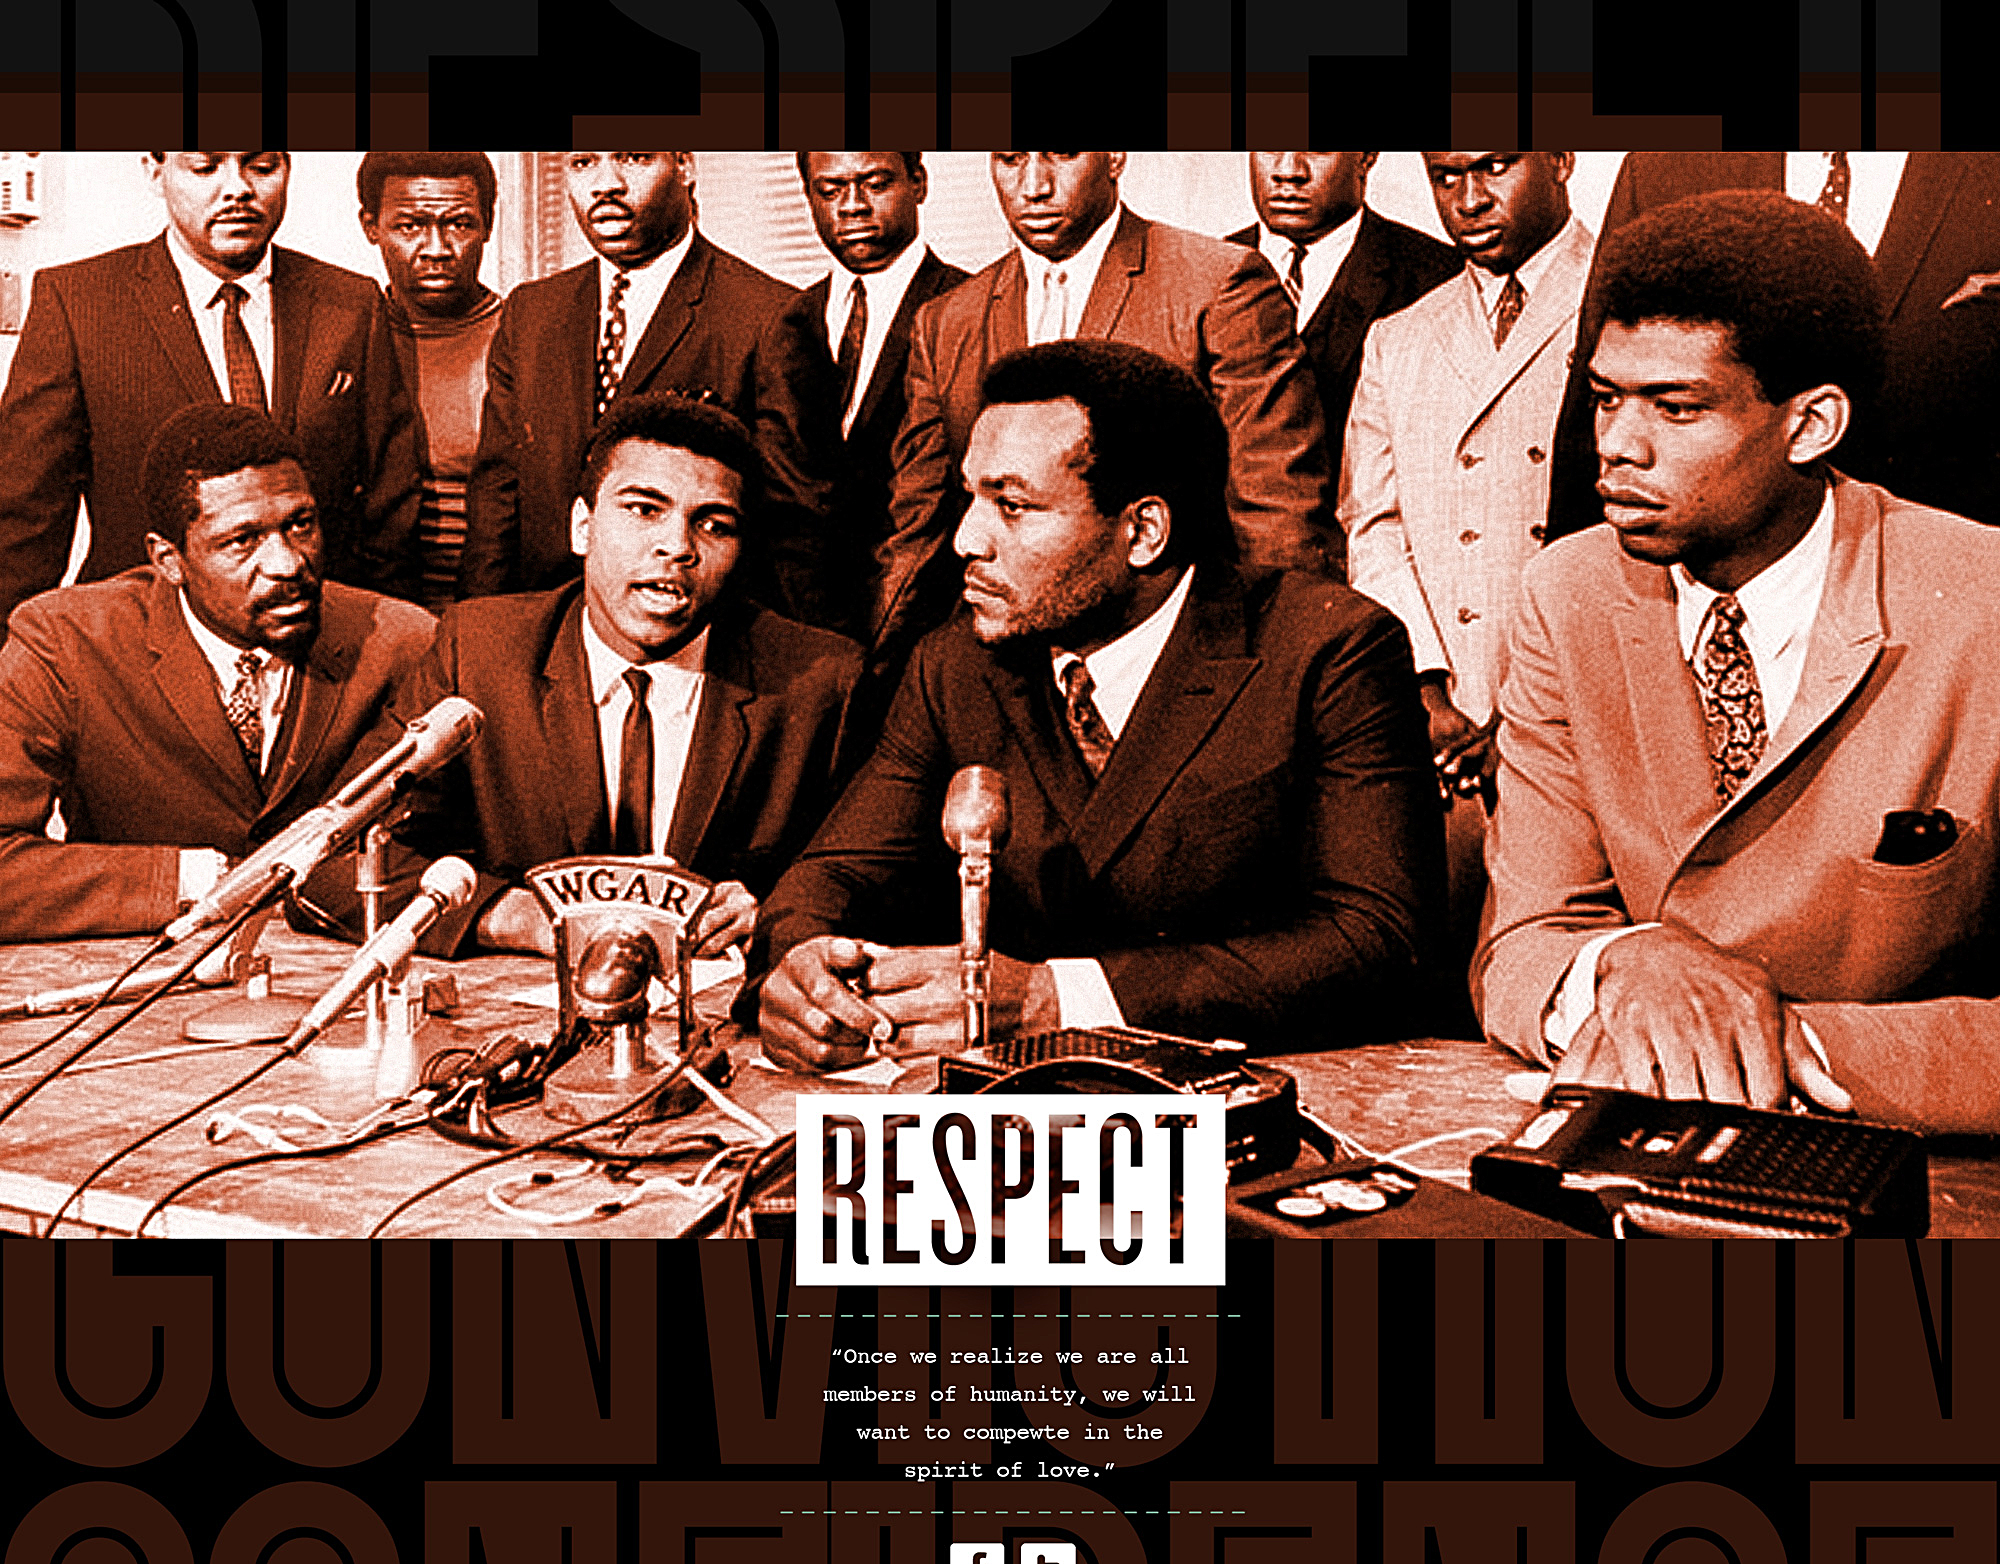 Muhammad Ali at press conference with quote about respect